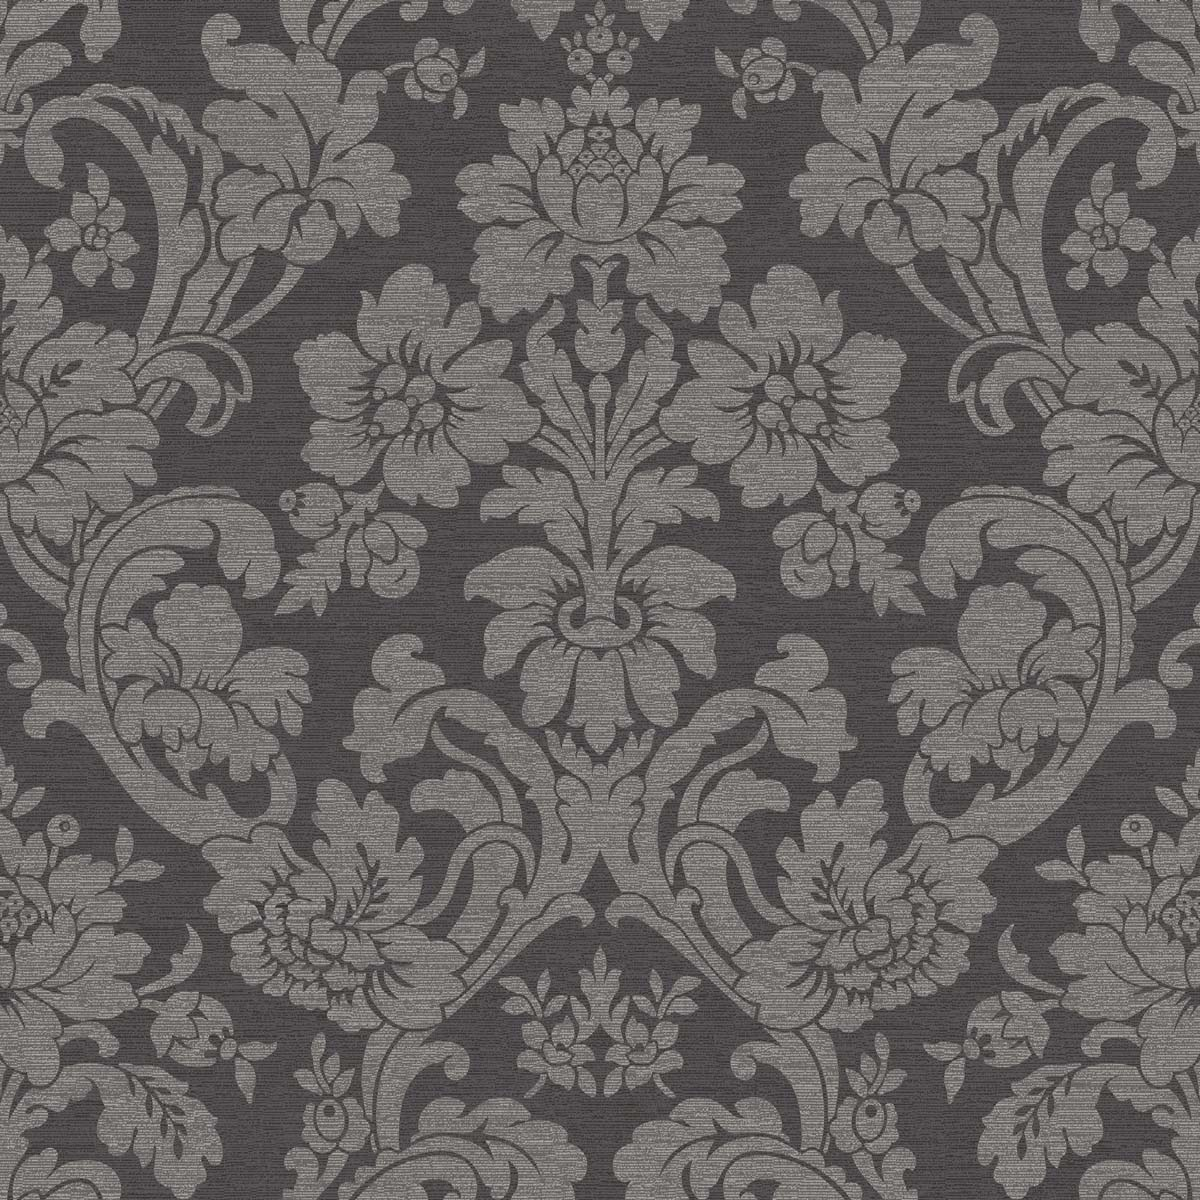 savile-row-wallpaper-VERMILLION-SR00537